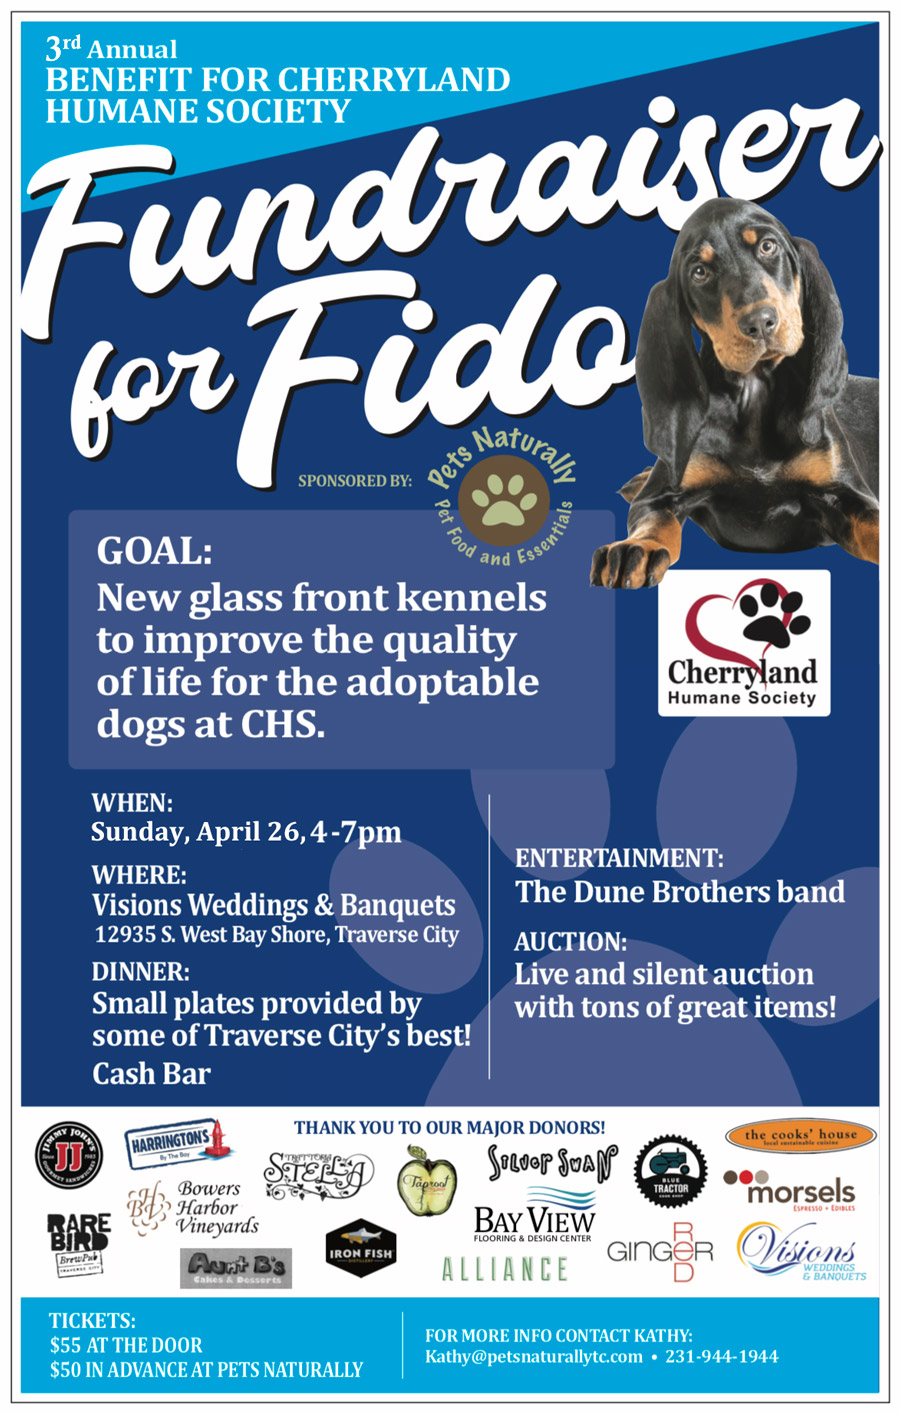 Major Donors Fundraiser for Fido April 26th, 2020